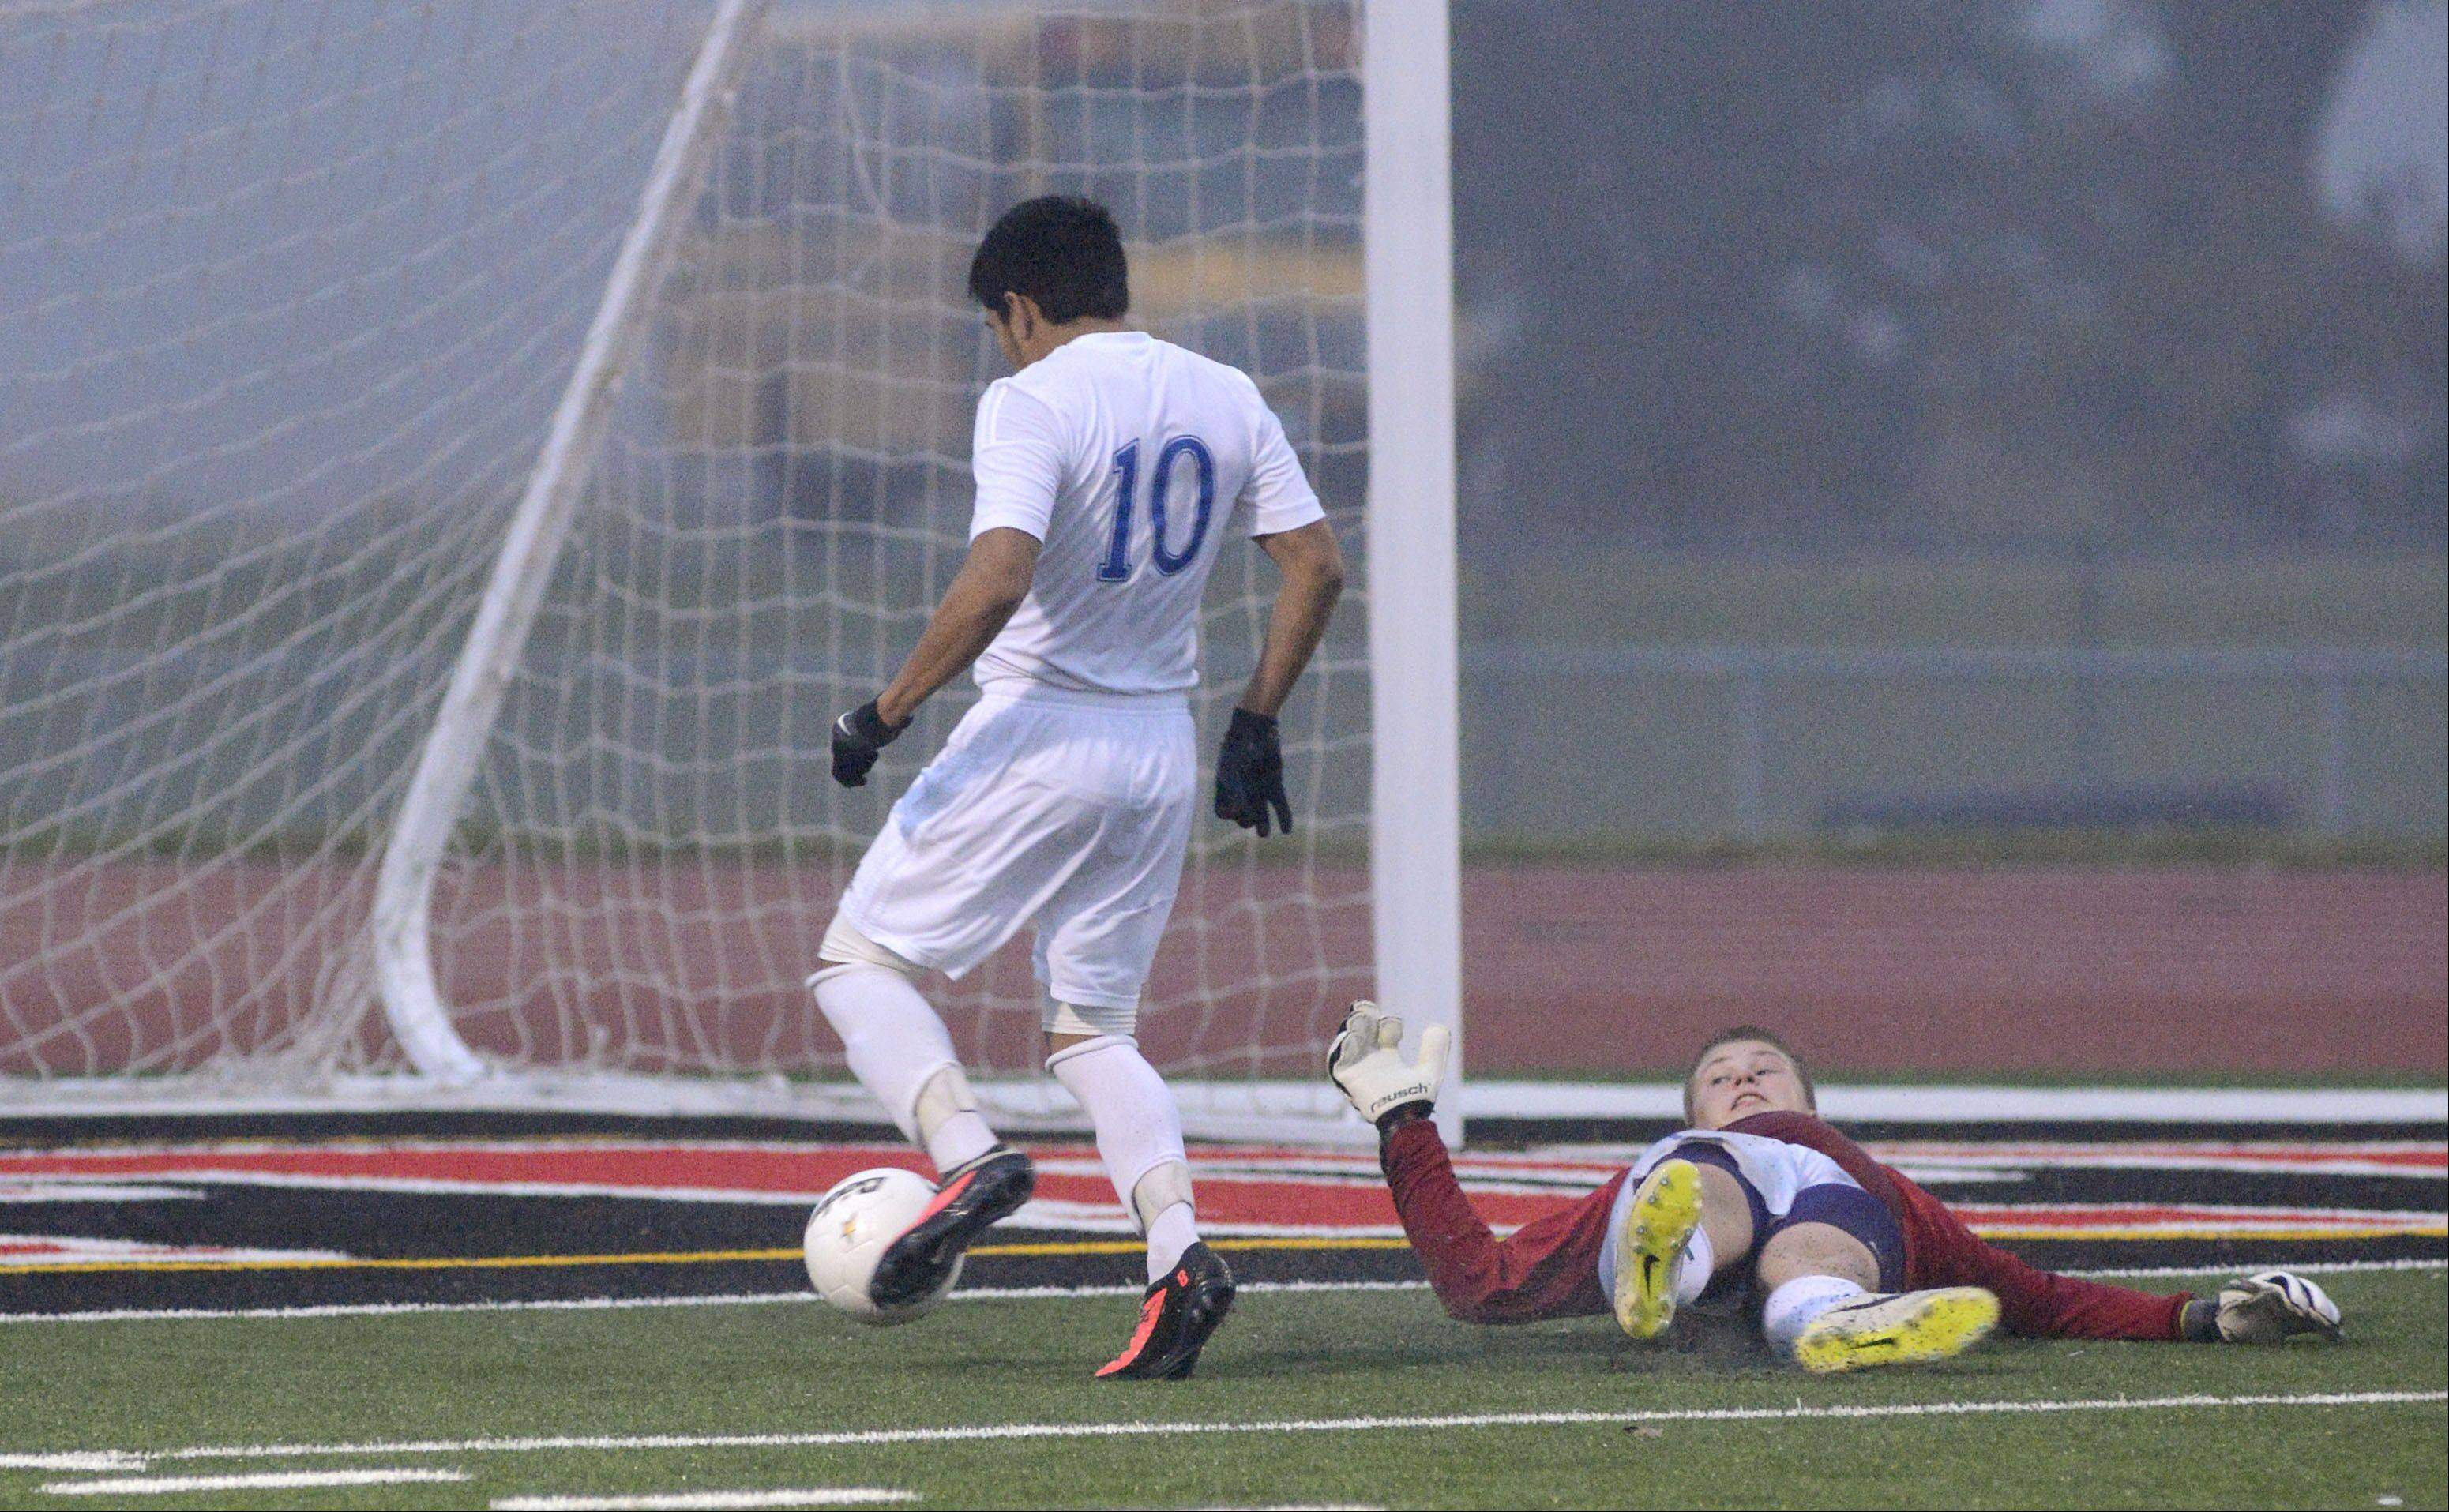 Larkin's Gonsalo Garcia trots past Hononegah goalie Henry Reynolds to score an easy goal, the second for the Royals, in the first half of the Huntley sectional semifinals on Wednesday.